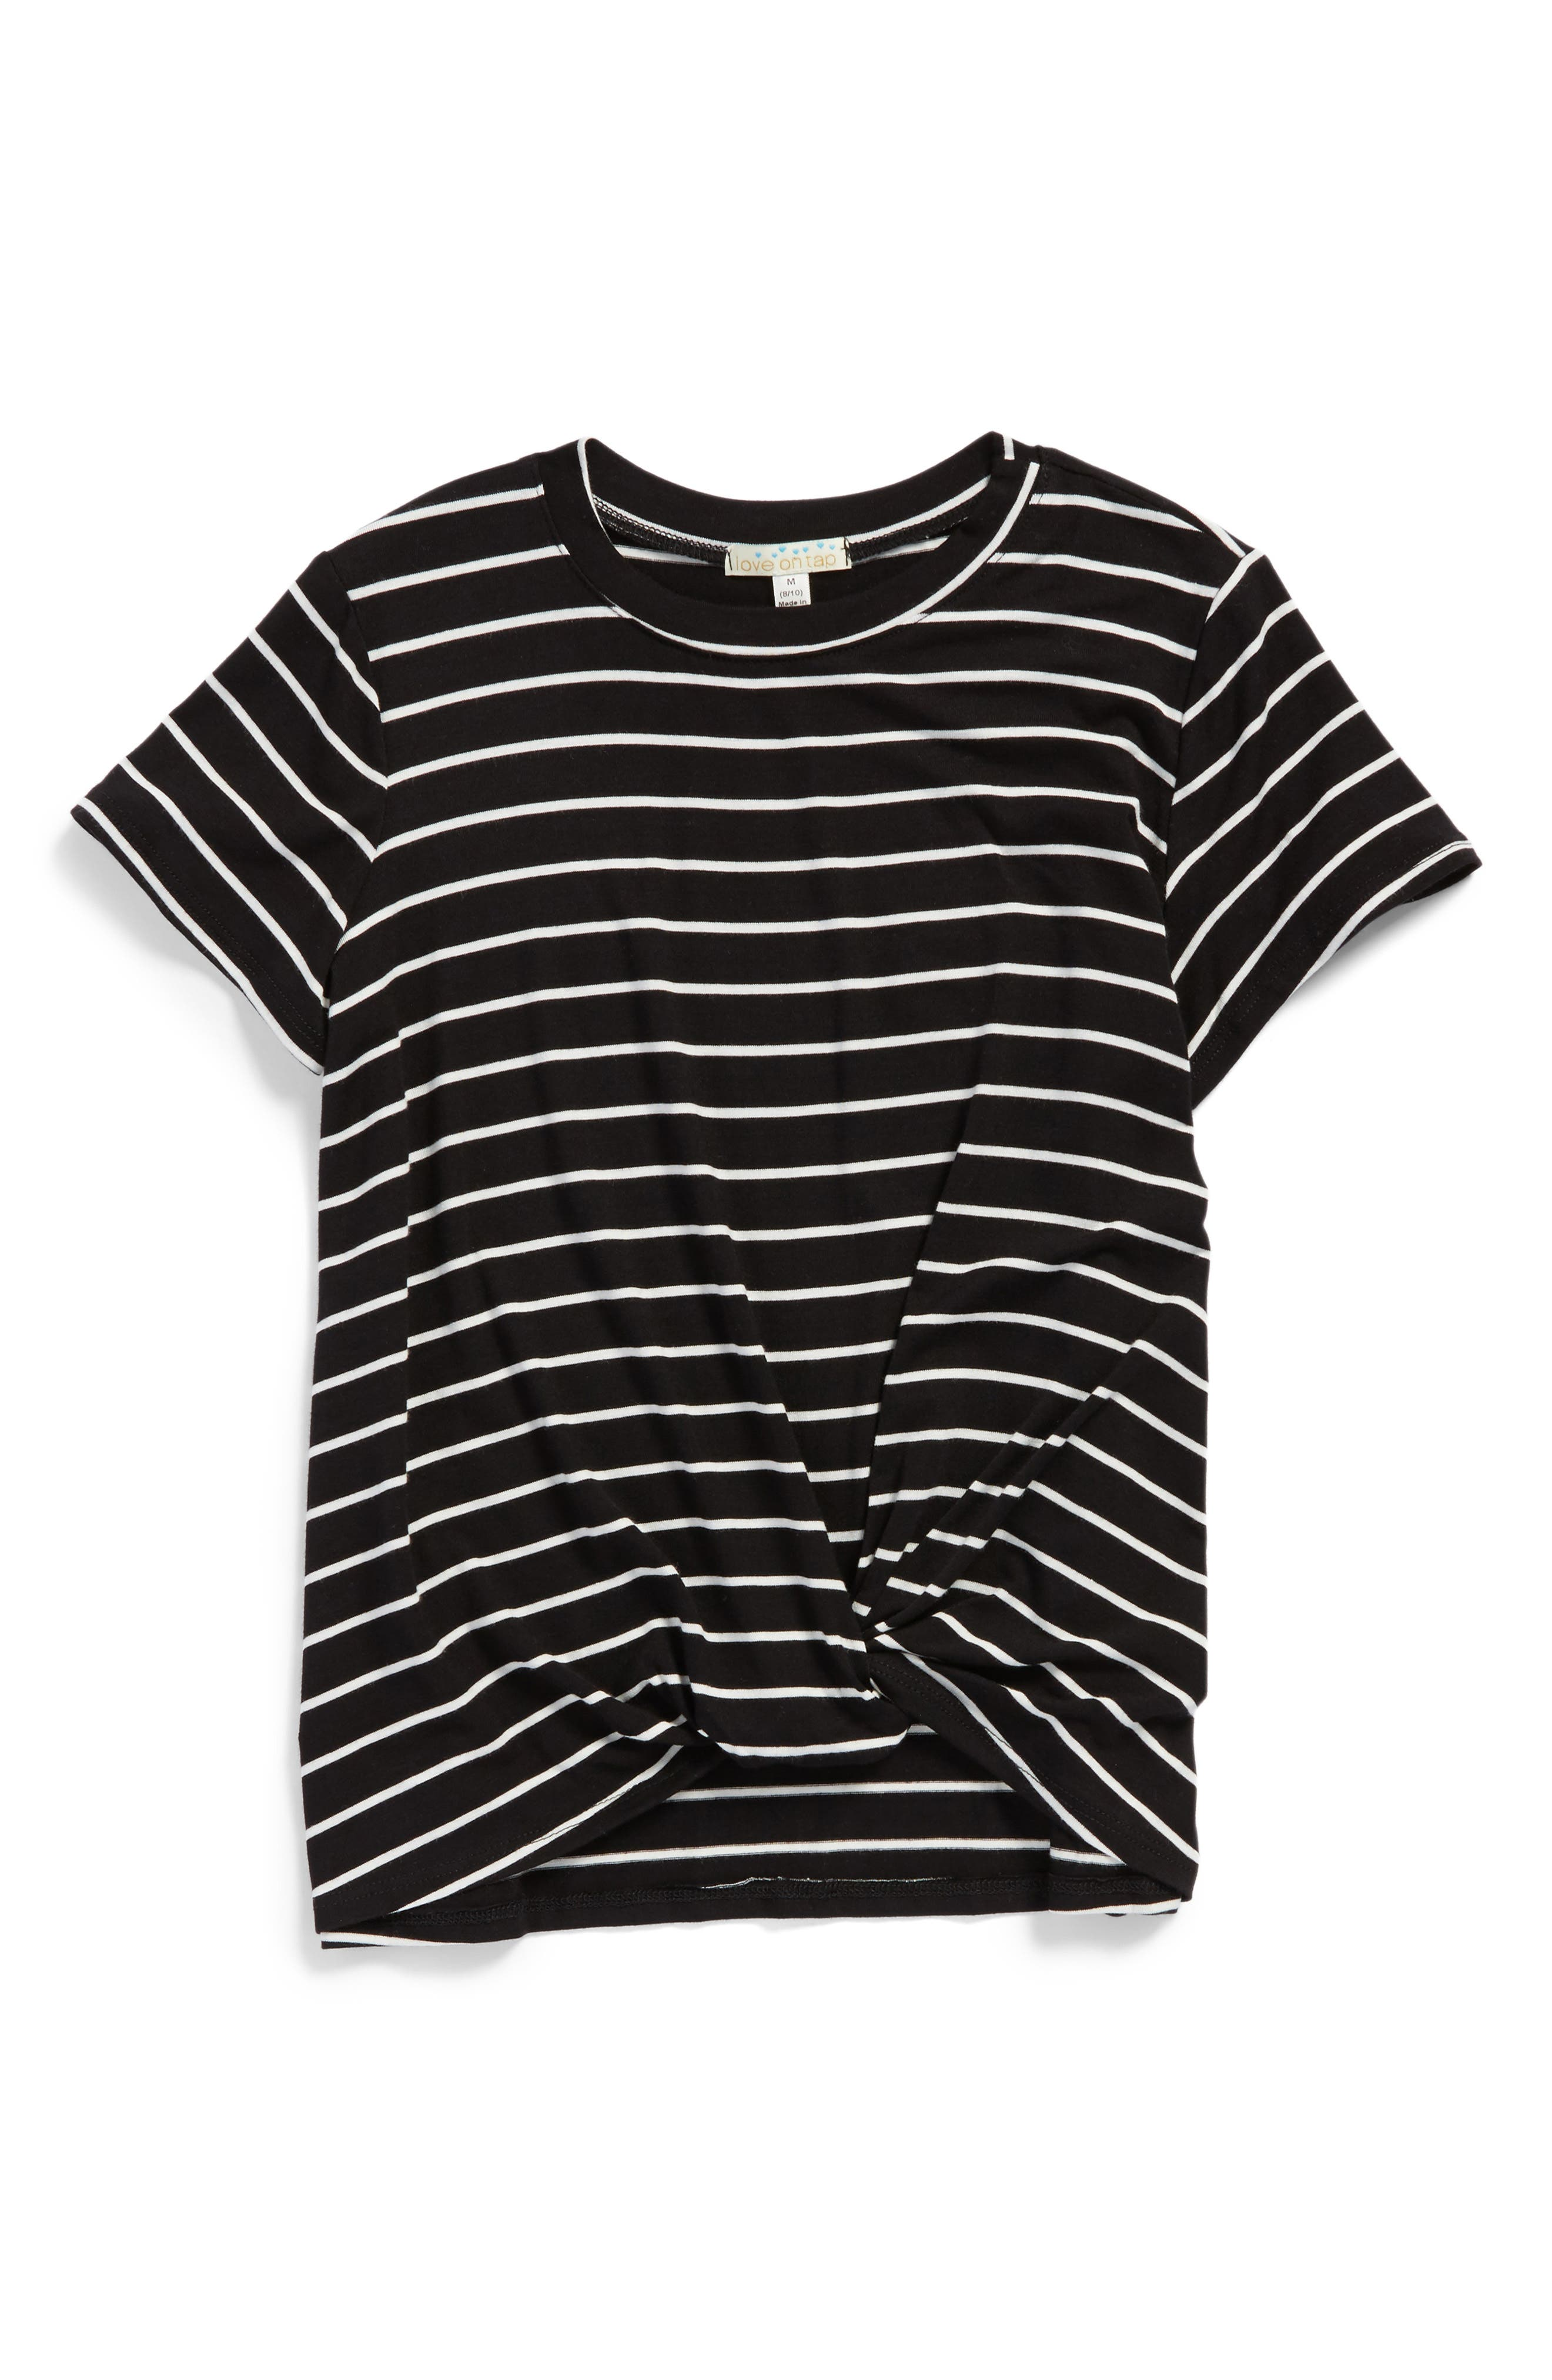 Knotted Stripe Tee,                         Main,                         color, Black/ White